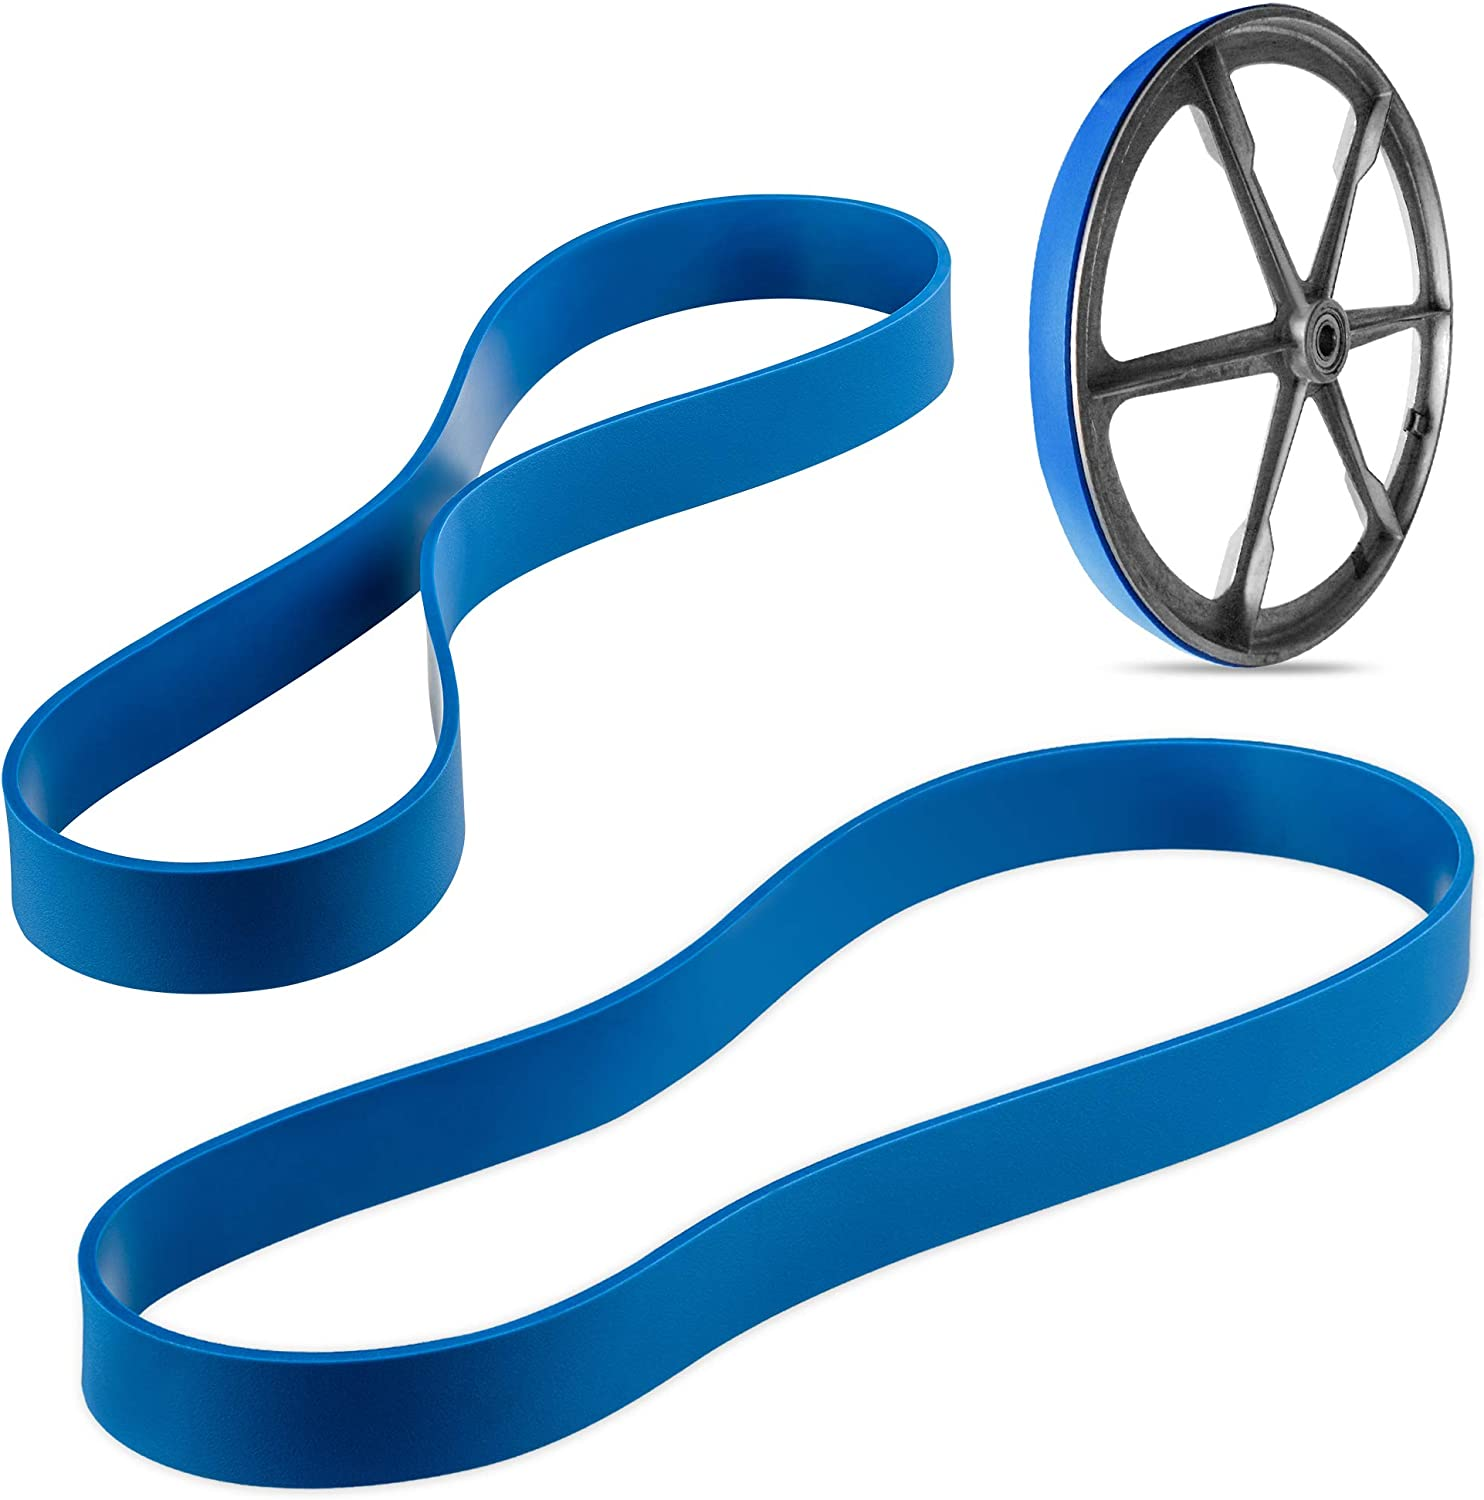 Workmas New Heavy Duty Band Saw Urethane 3 Blue Max Tire Set FOR